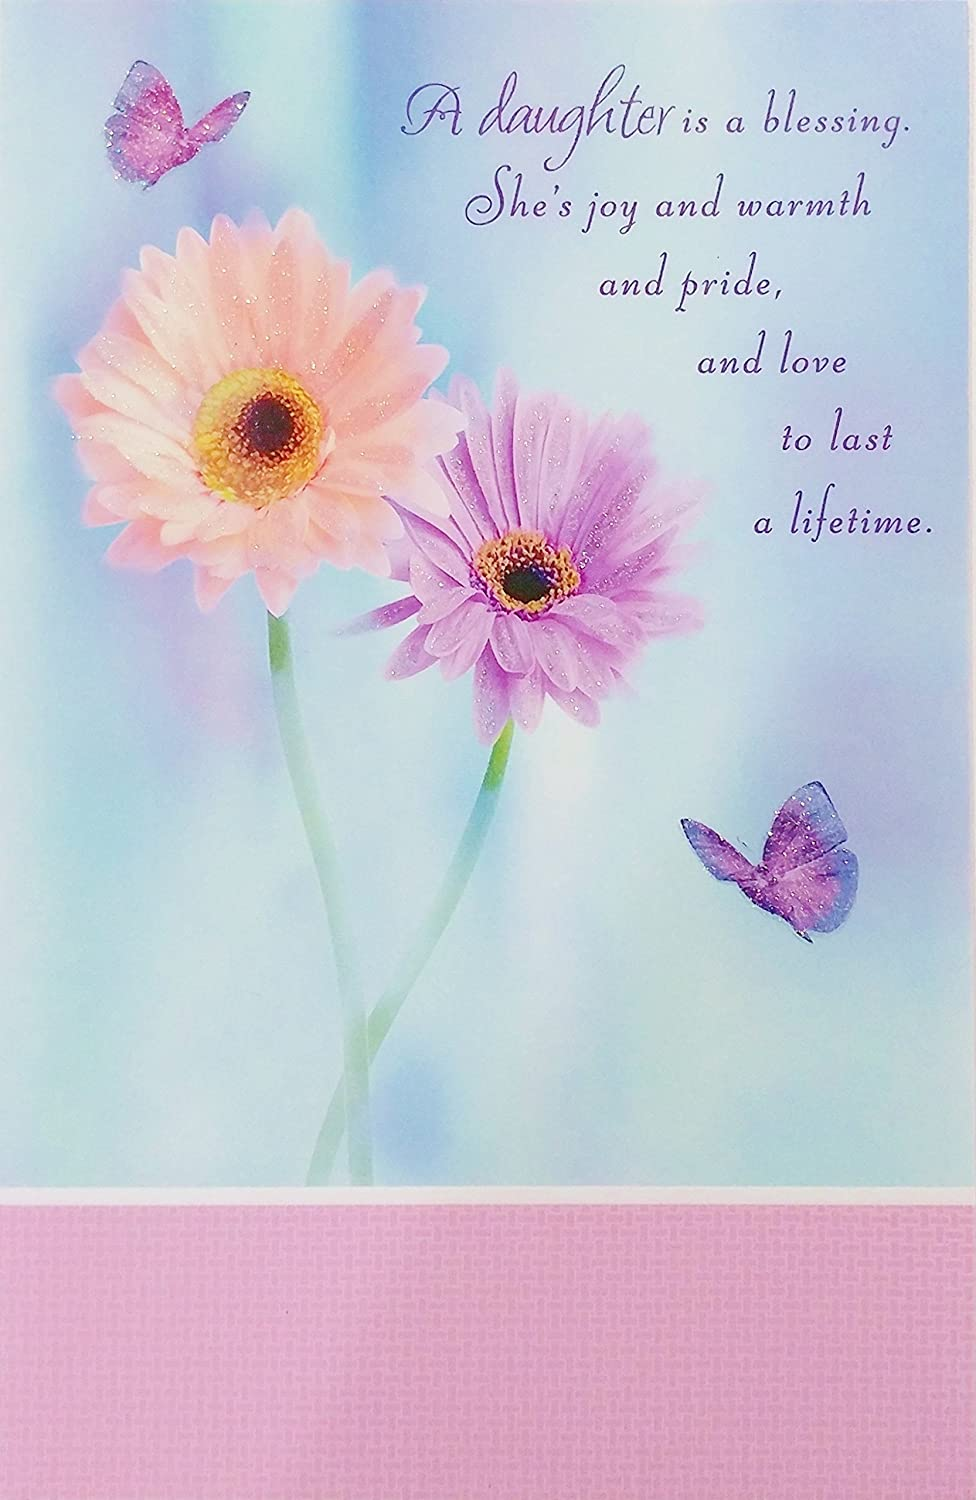 A Daughter is A Blessing - Religious Happy Birthday Greeting Card -